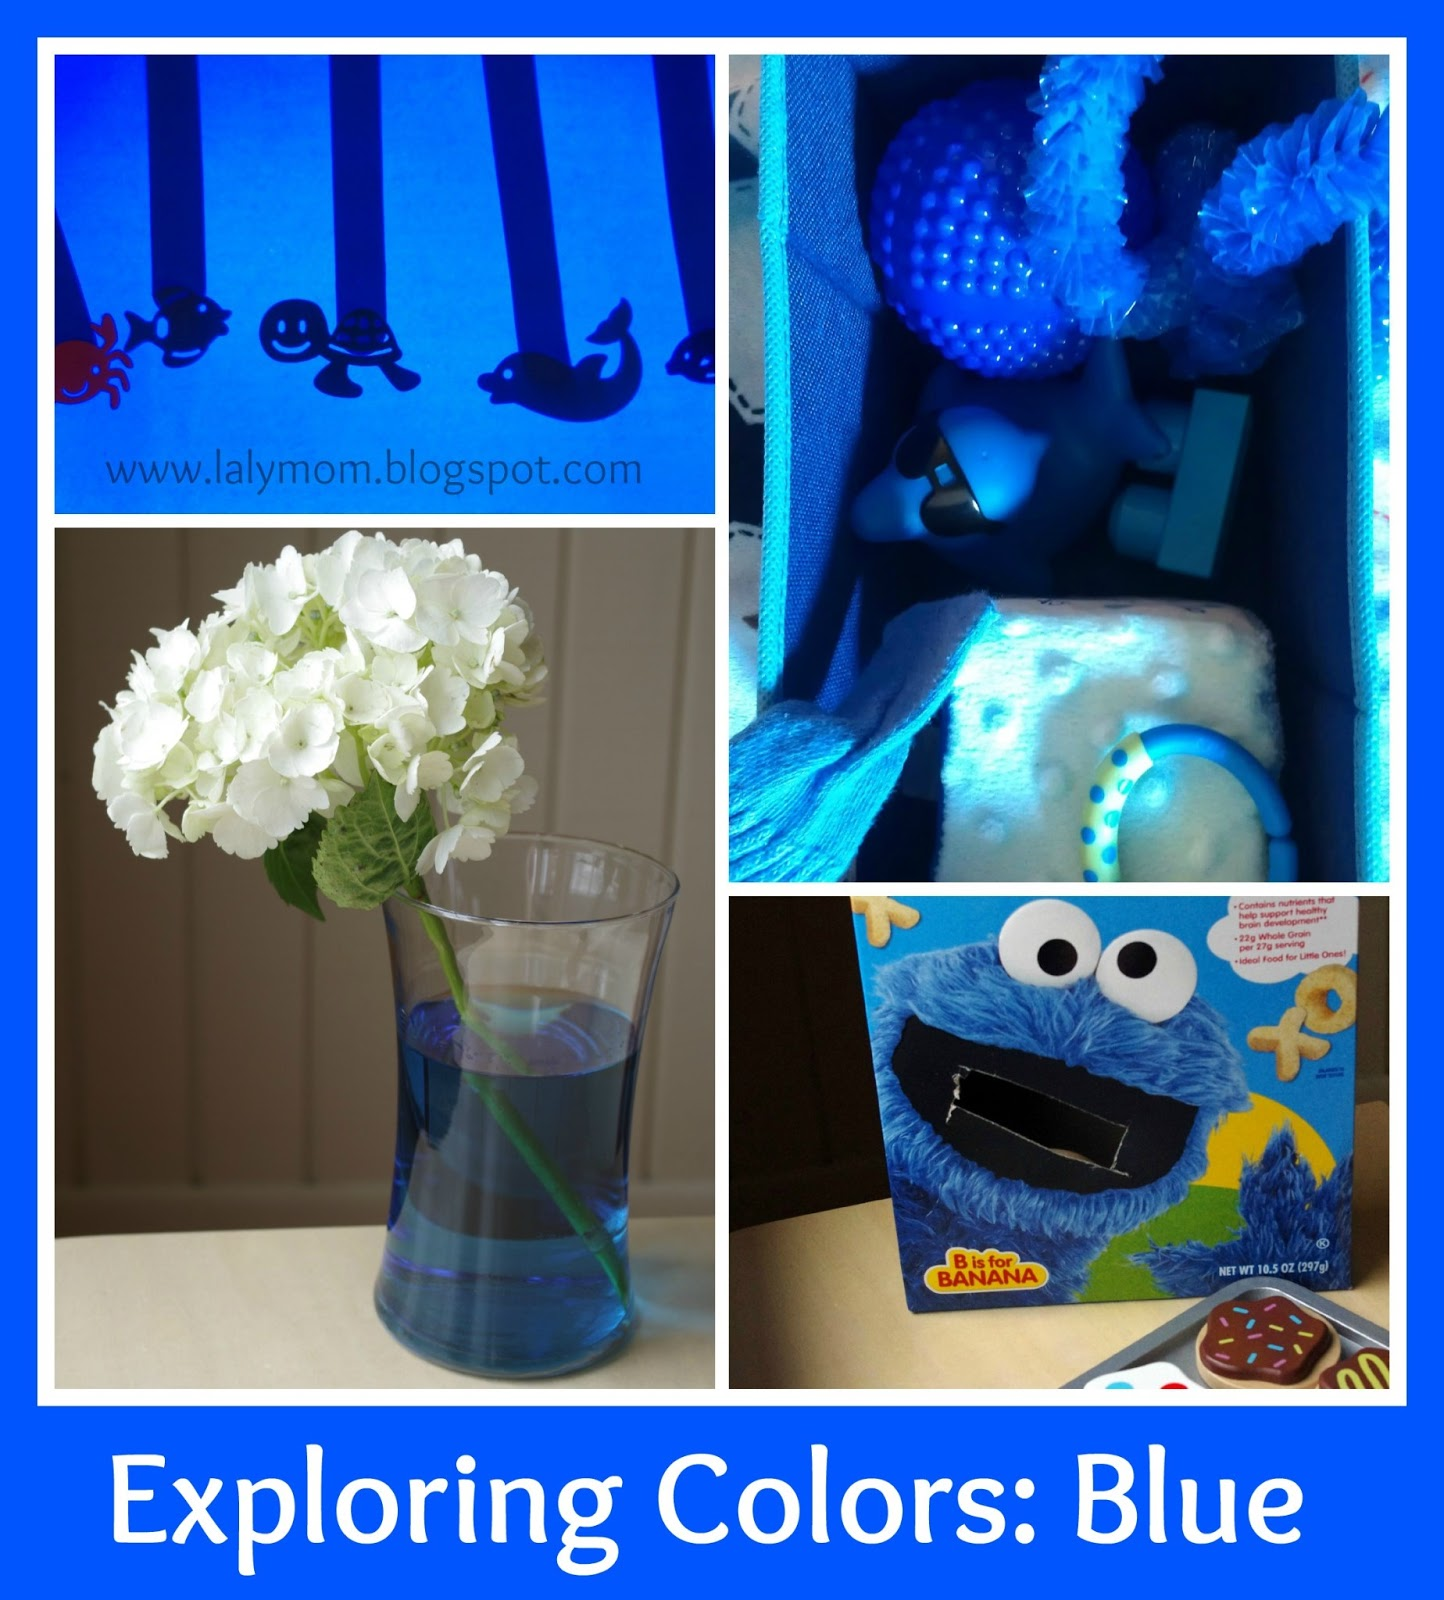 Exploring The Color Blue On Lalymom